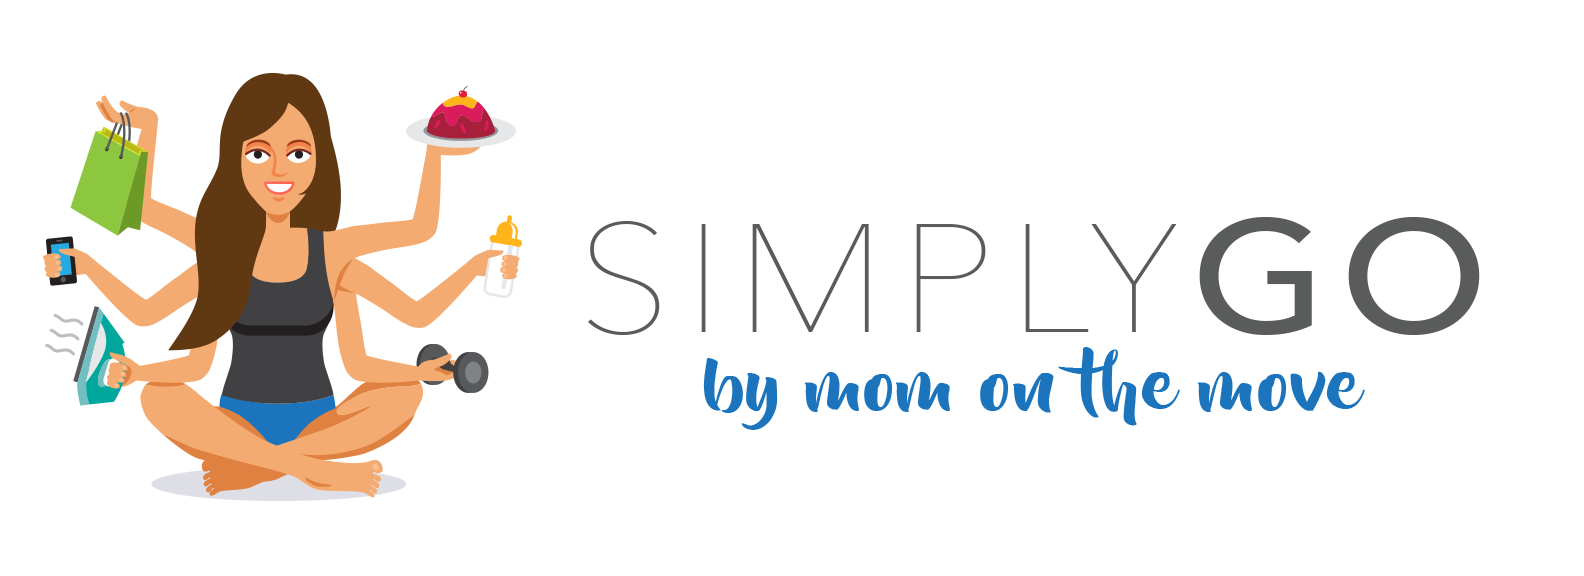 SIMPLYGO BY MOM ON THE MOVE